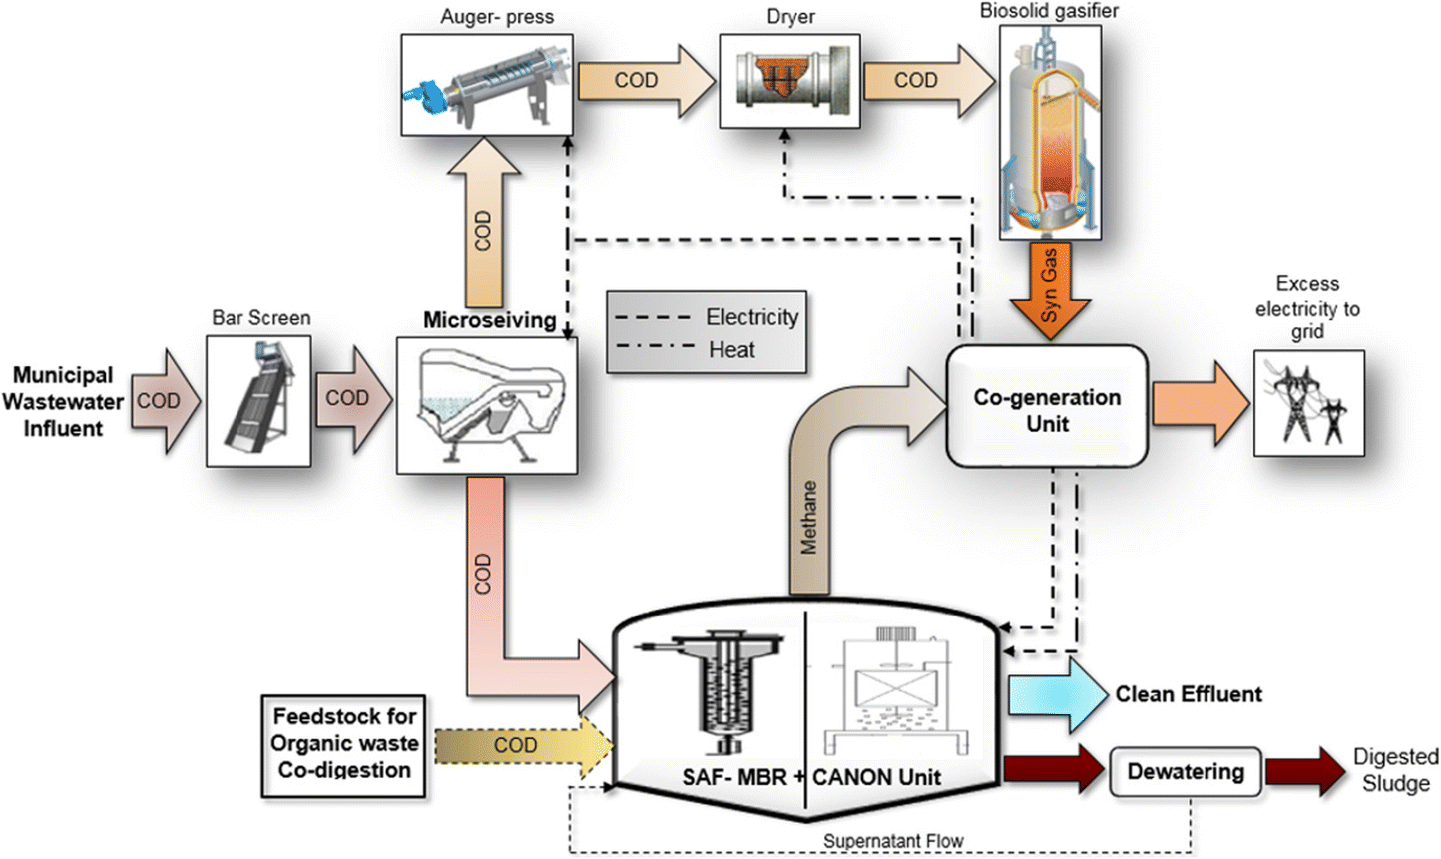 Unit Energy Consumption As Benchmark To Select Positive Process Flow Diagram Wwtp Open Image In New Window